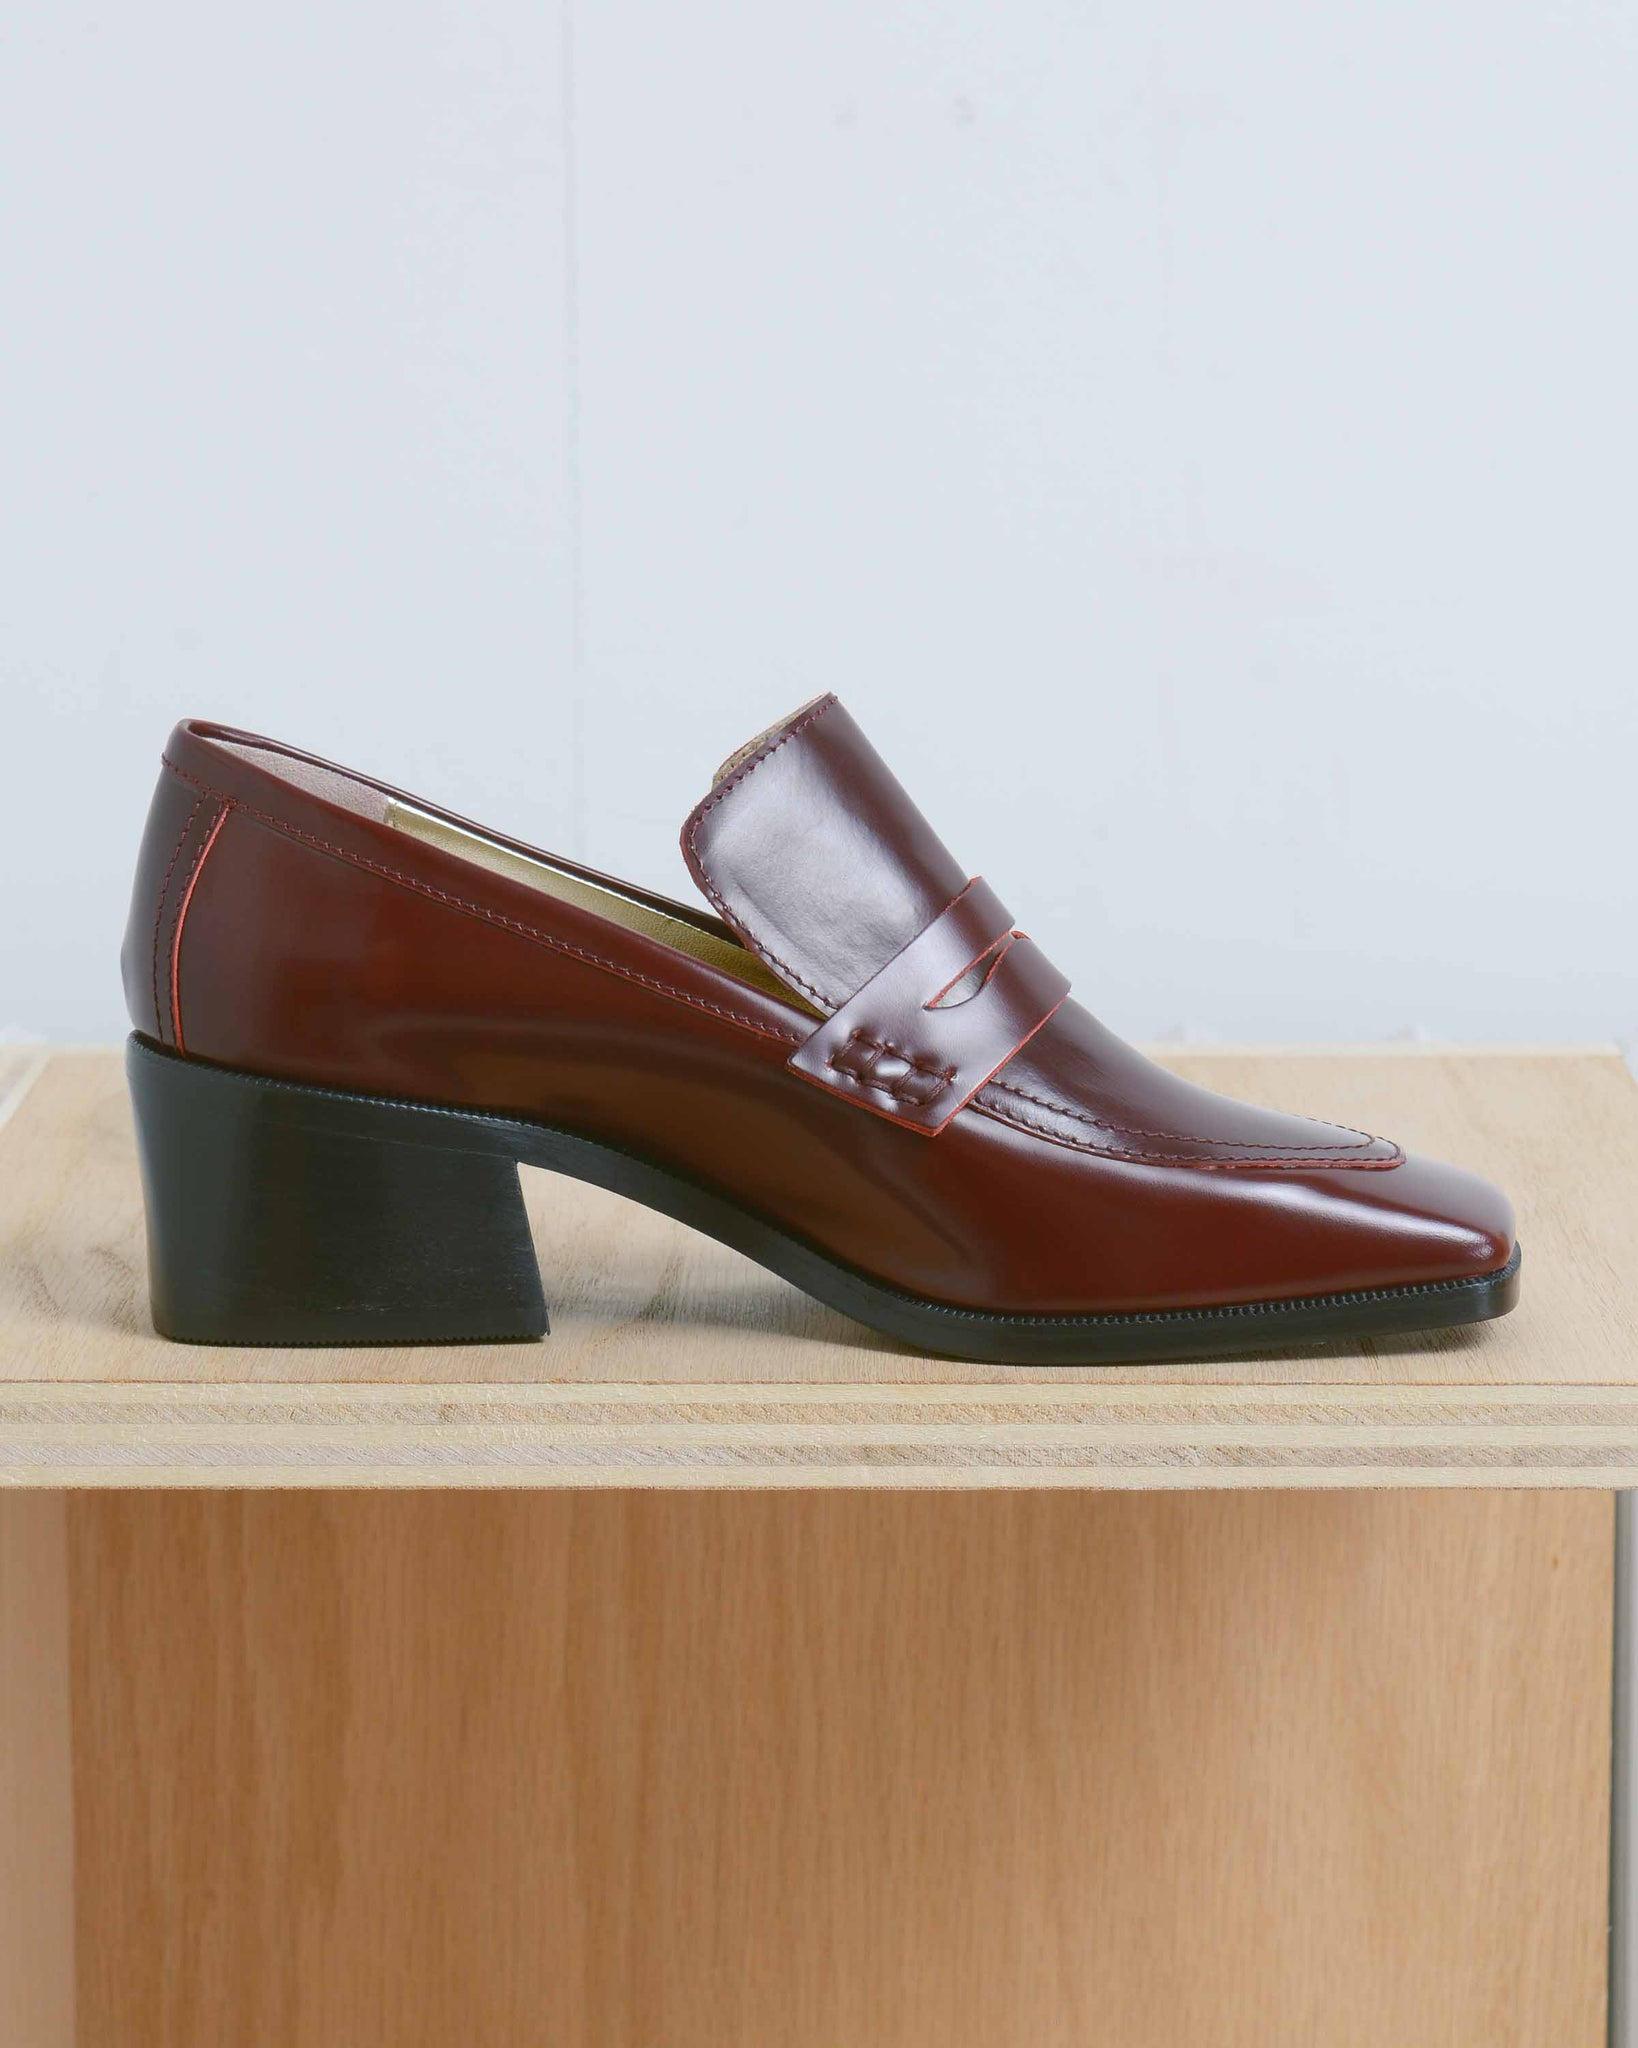 Oxblood Loafer